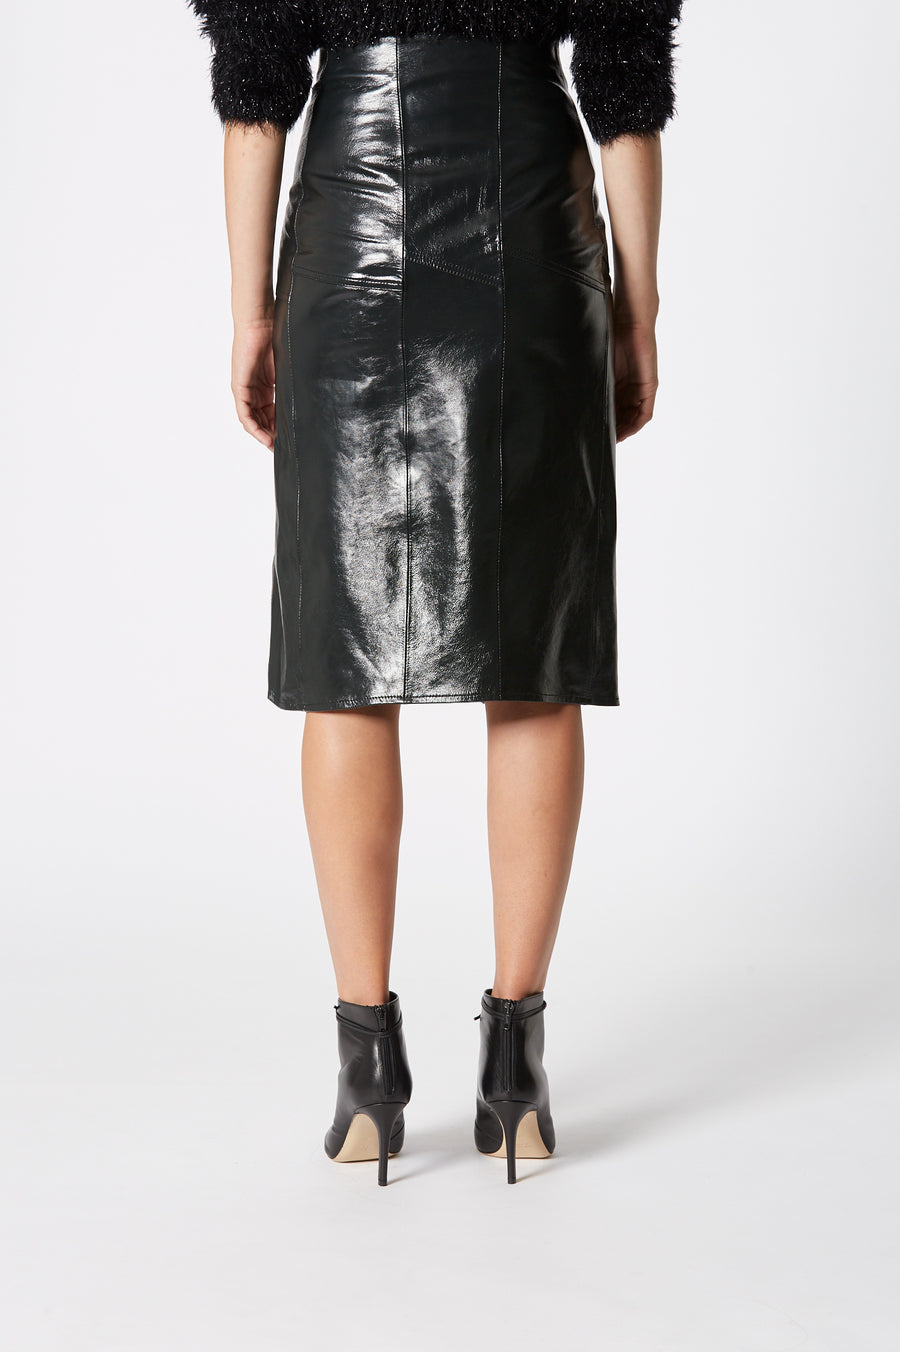 Leather Panel Skirt, 100% leather, concealed hook and zip fastening at the front, sits high on waist, falls just below knee, Color Midnight